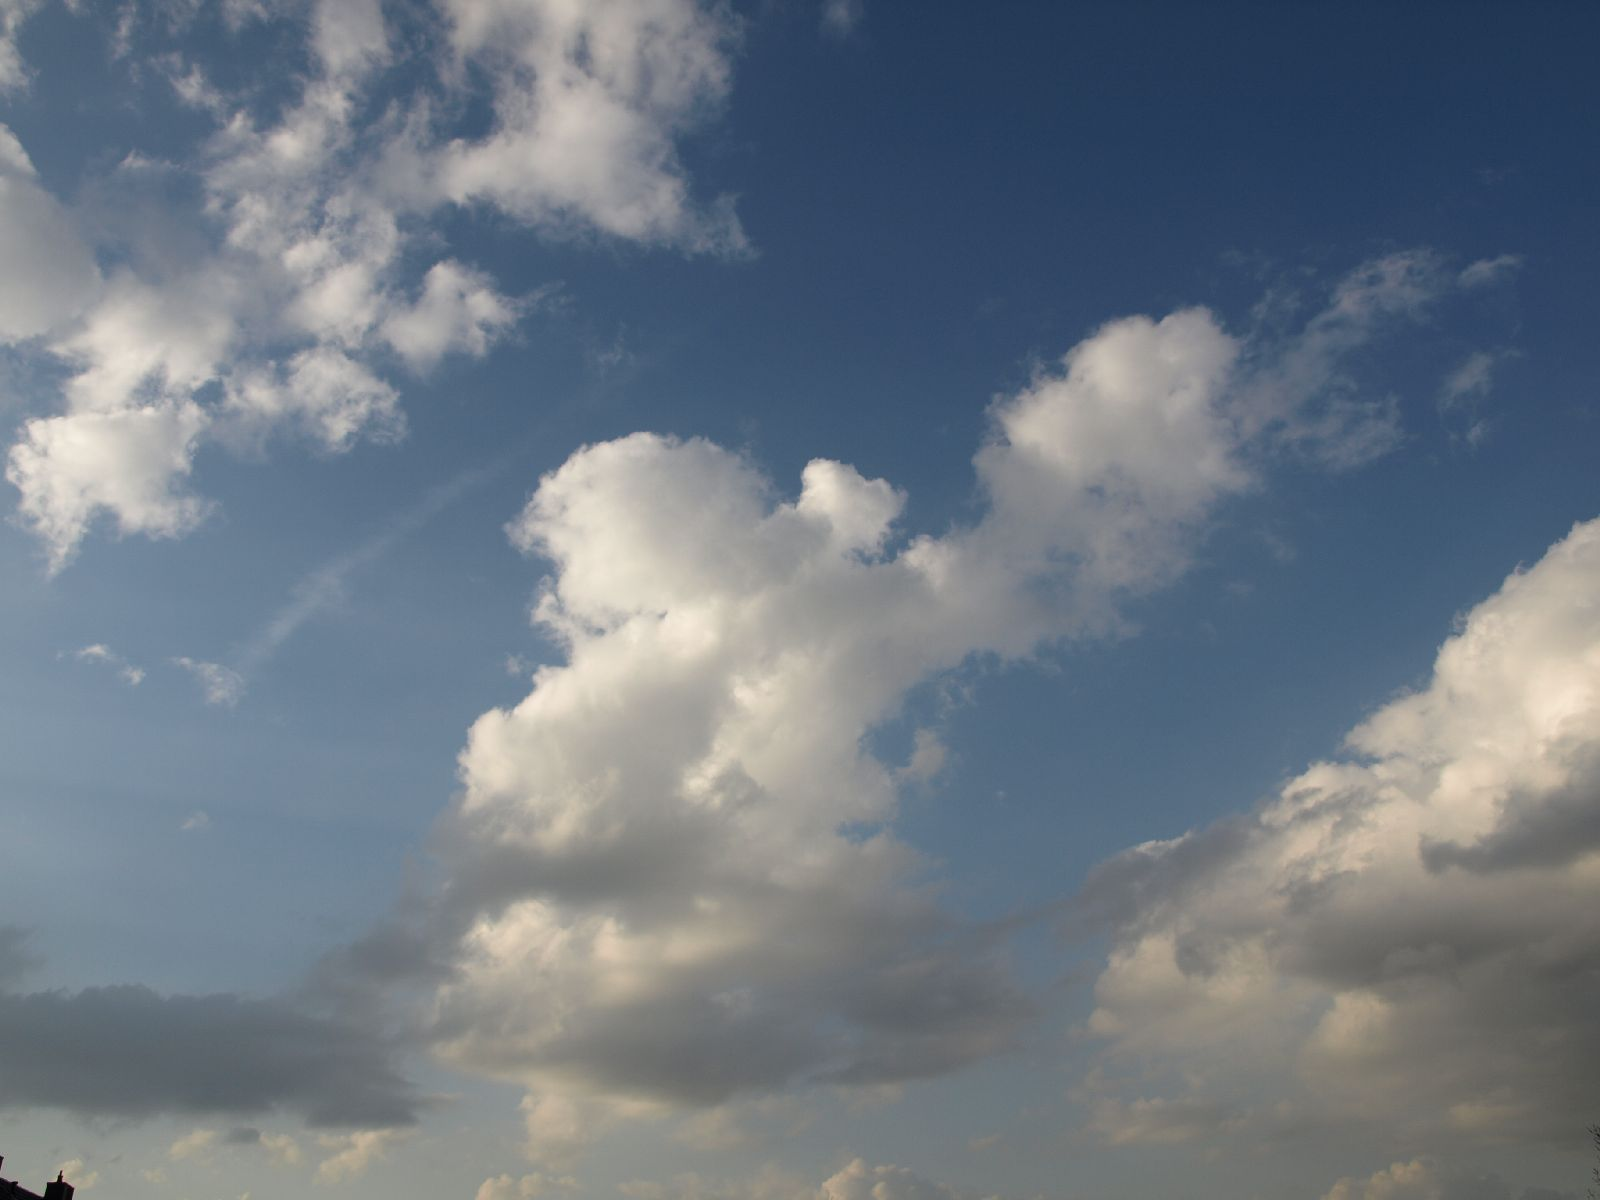 Sky_Clouds_Photo_Texture_A_P4120940